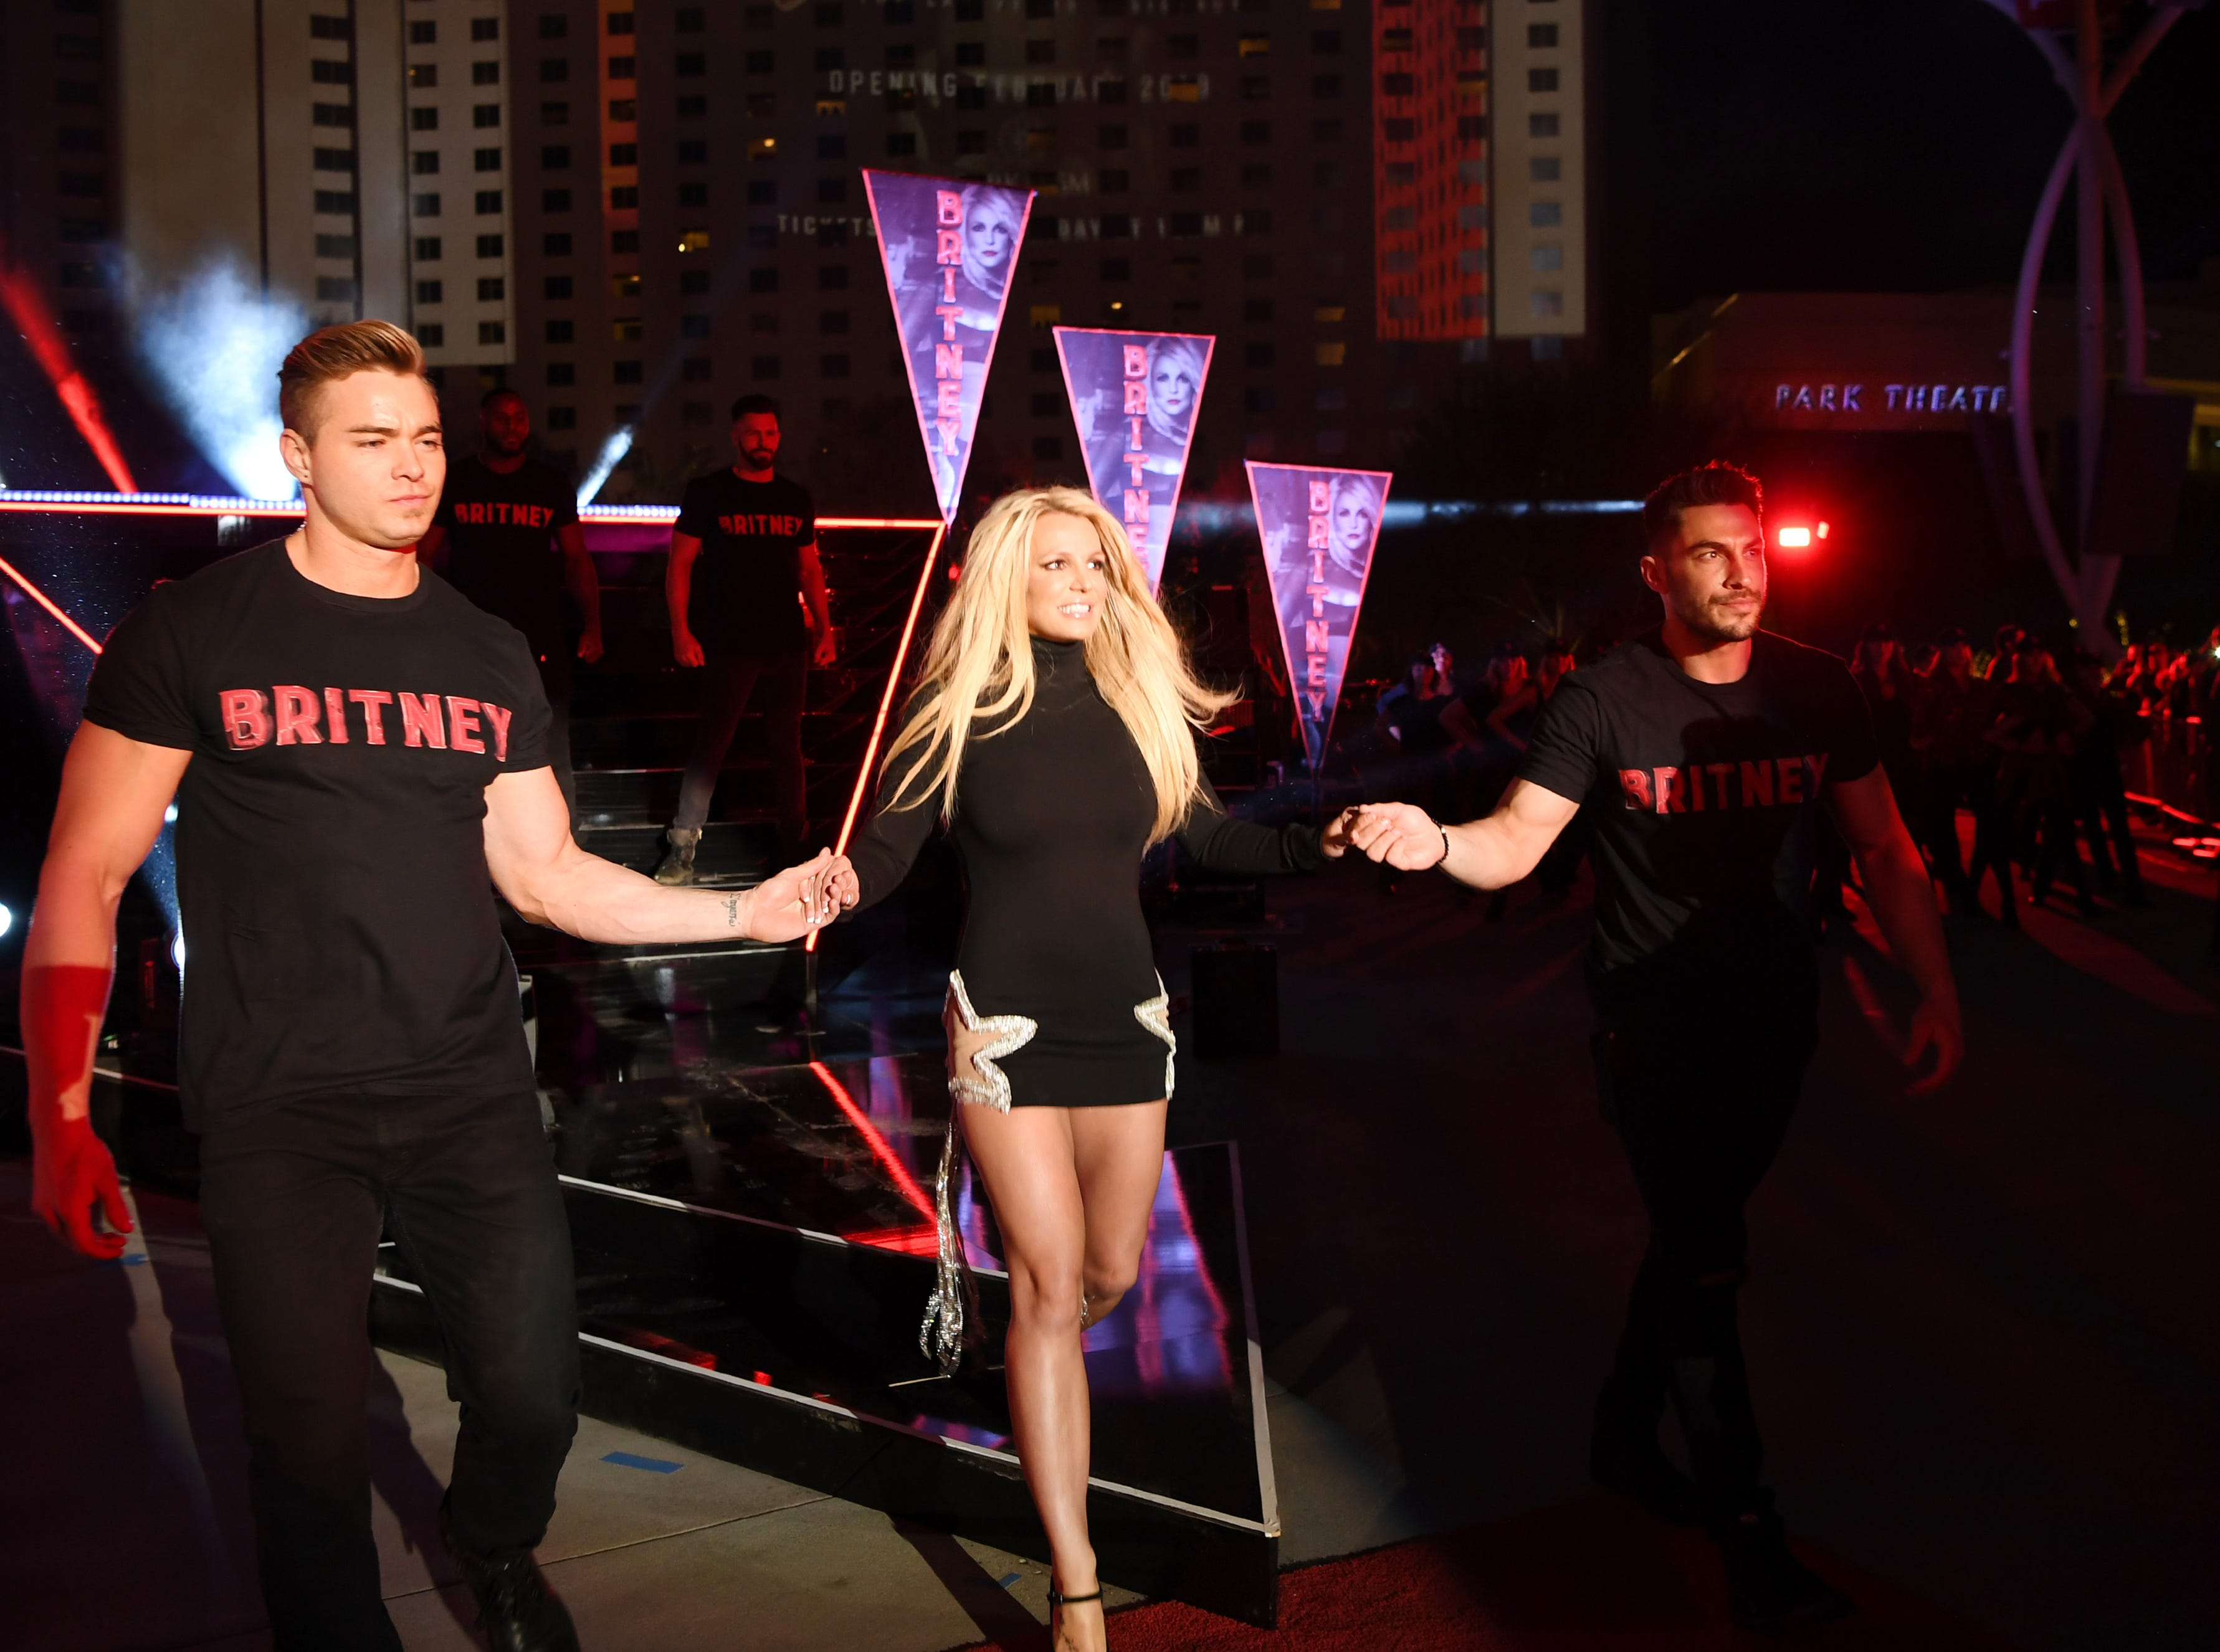 Britney Spears at the announcement of her new concert residency at the Park Theater at Park MGM resort. Shows begin  Feb. 13, 2019.